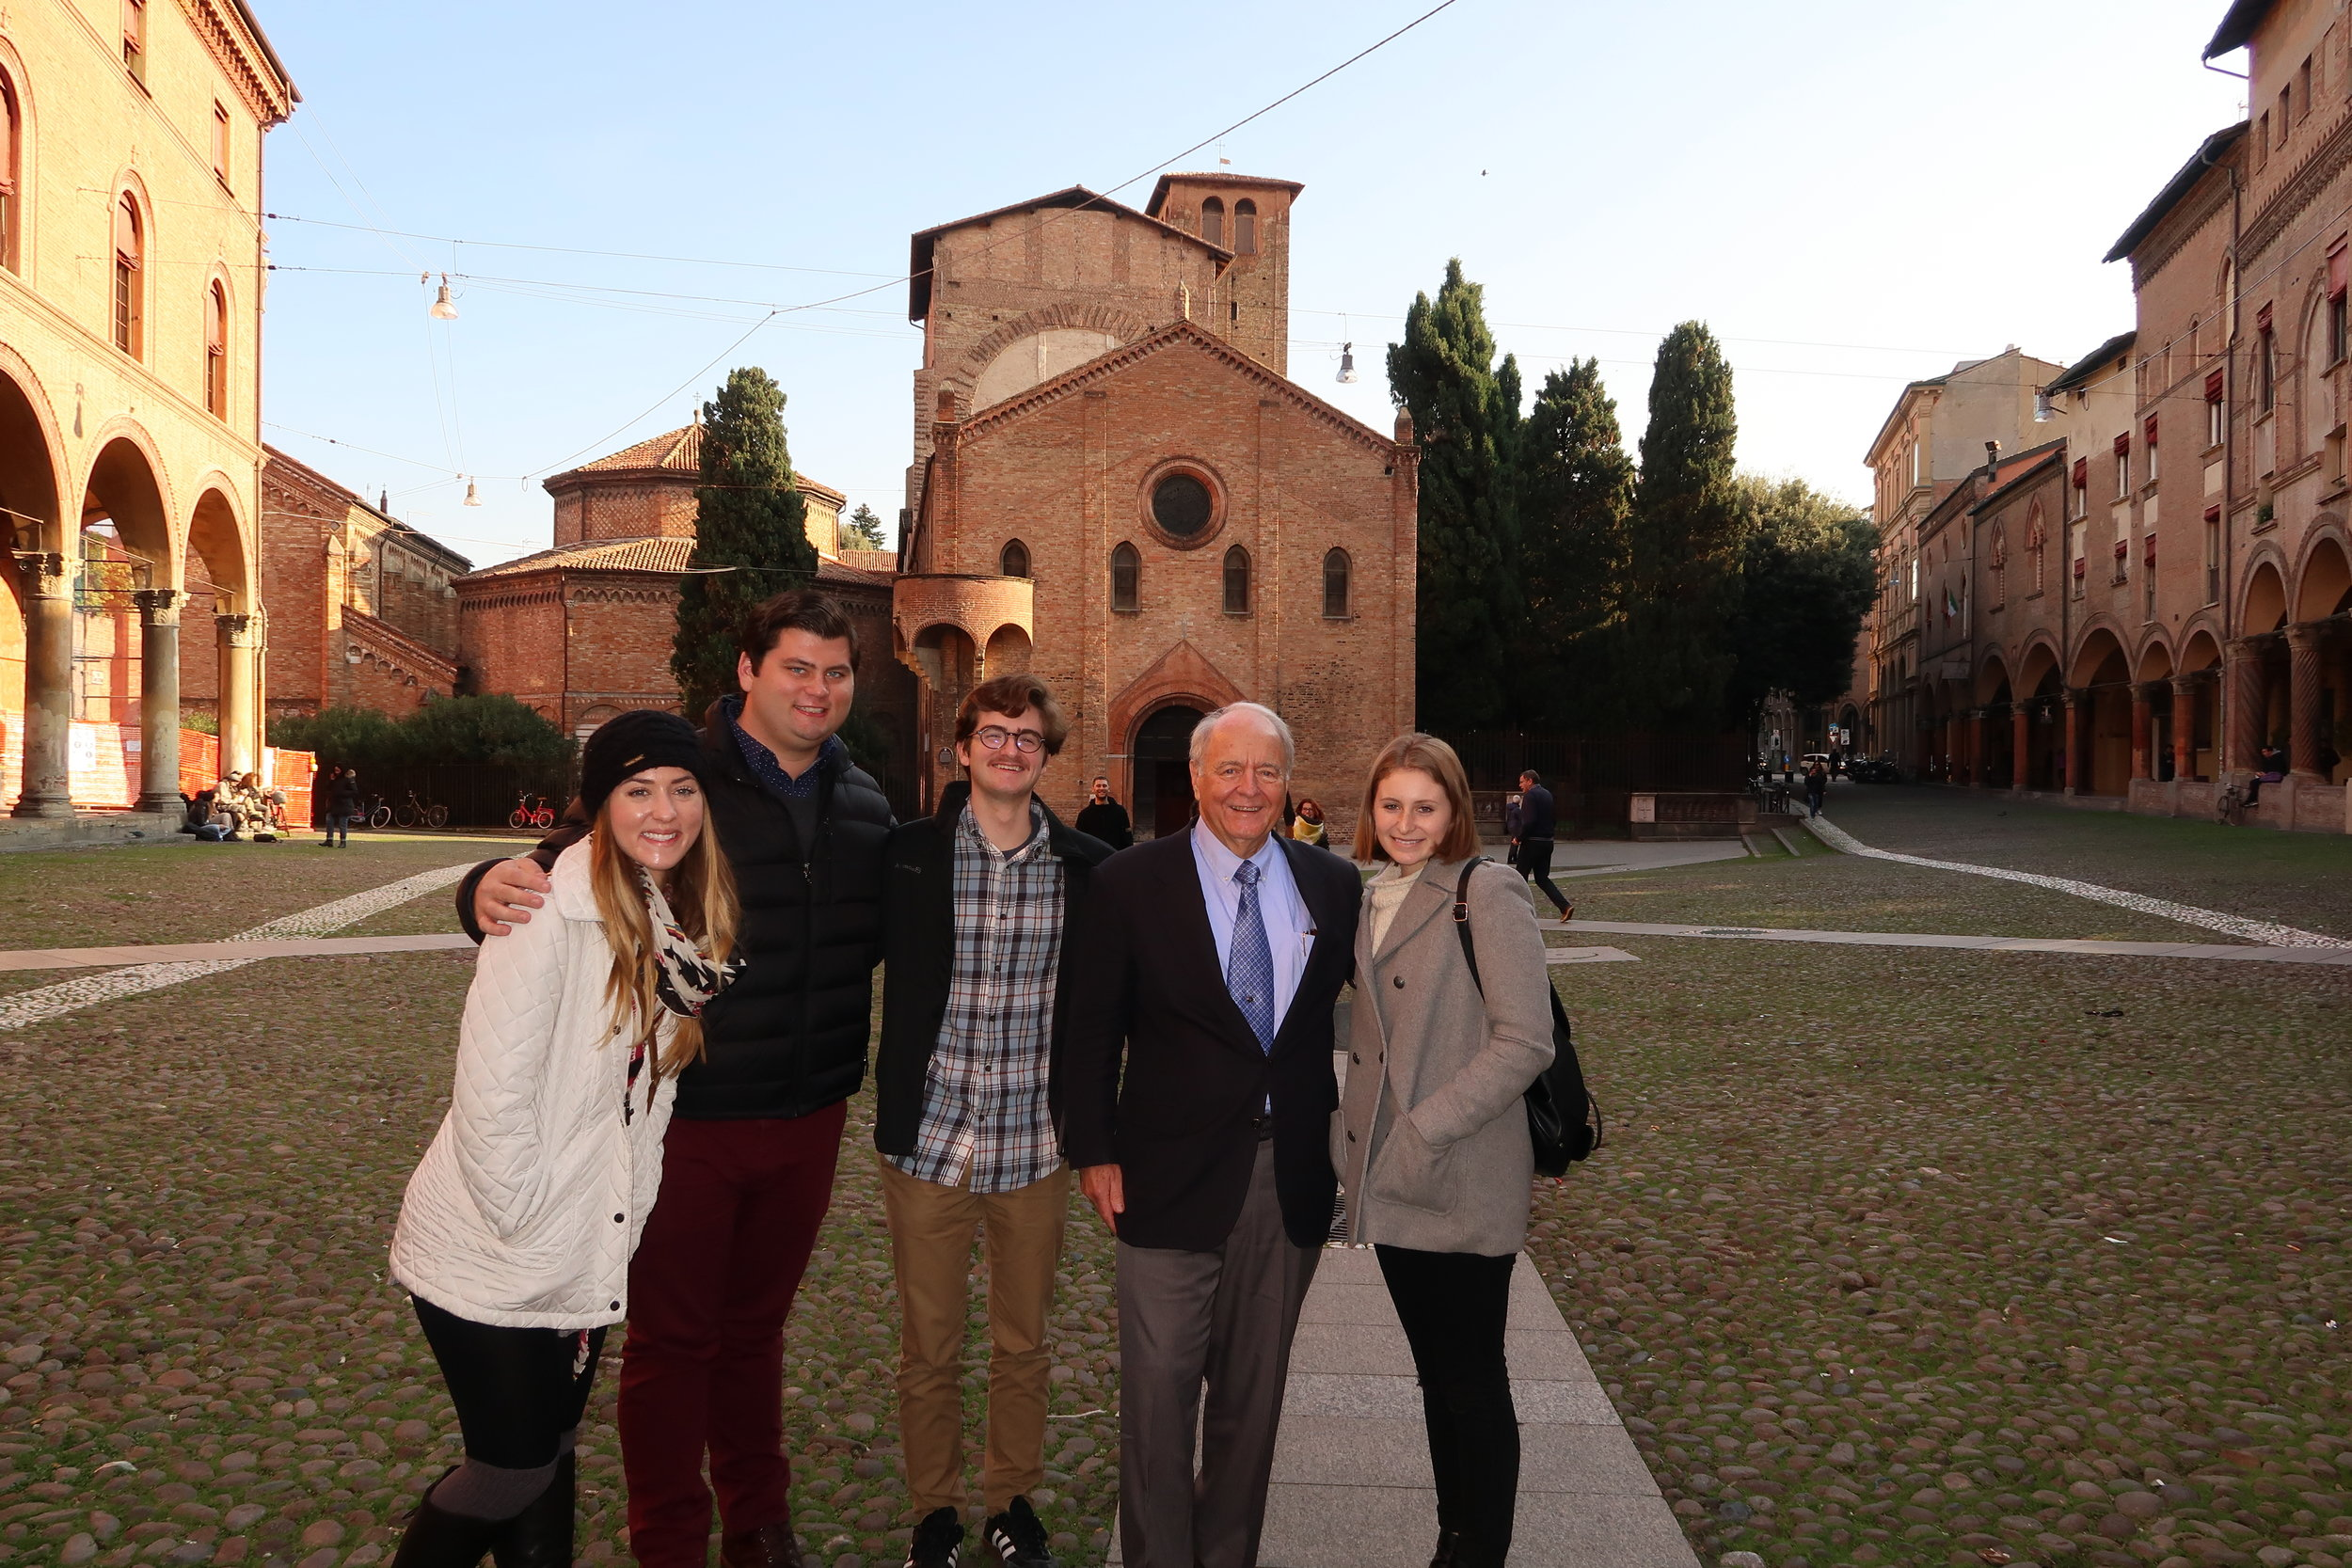 Dr. Christopher P. Puto with Spring Hill College students in Italy in November 2016 (Photo by Spring Hill College)